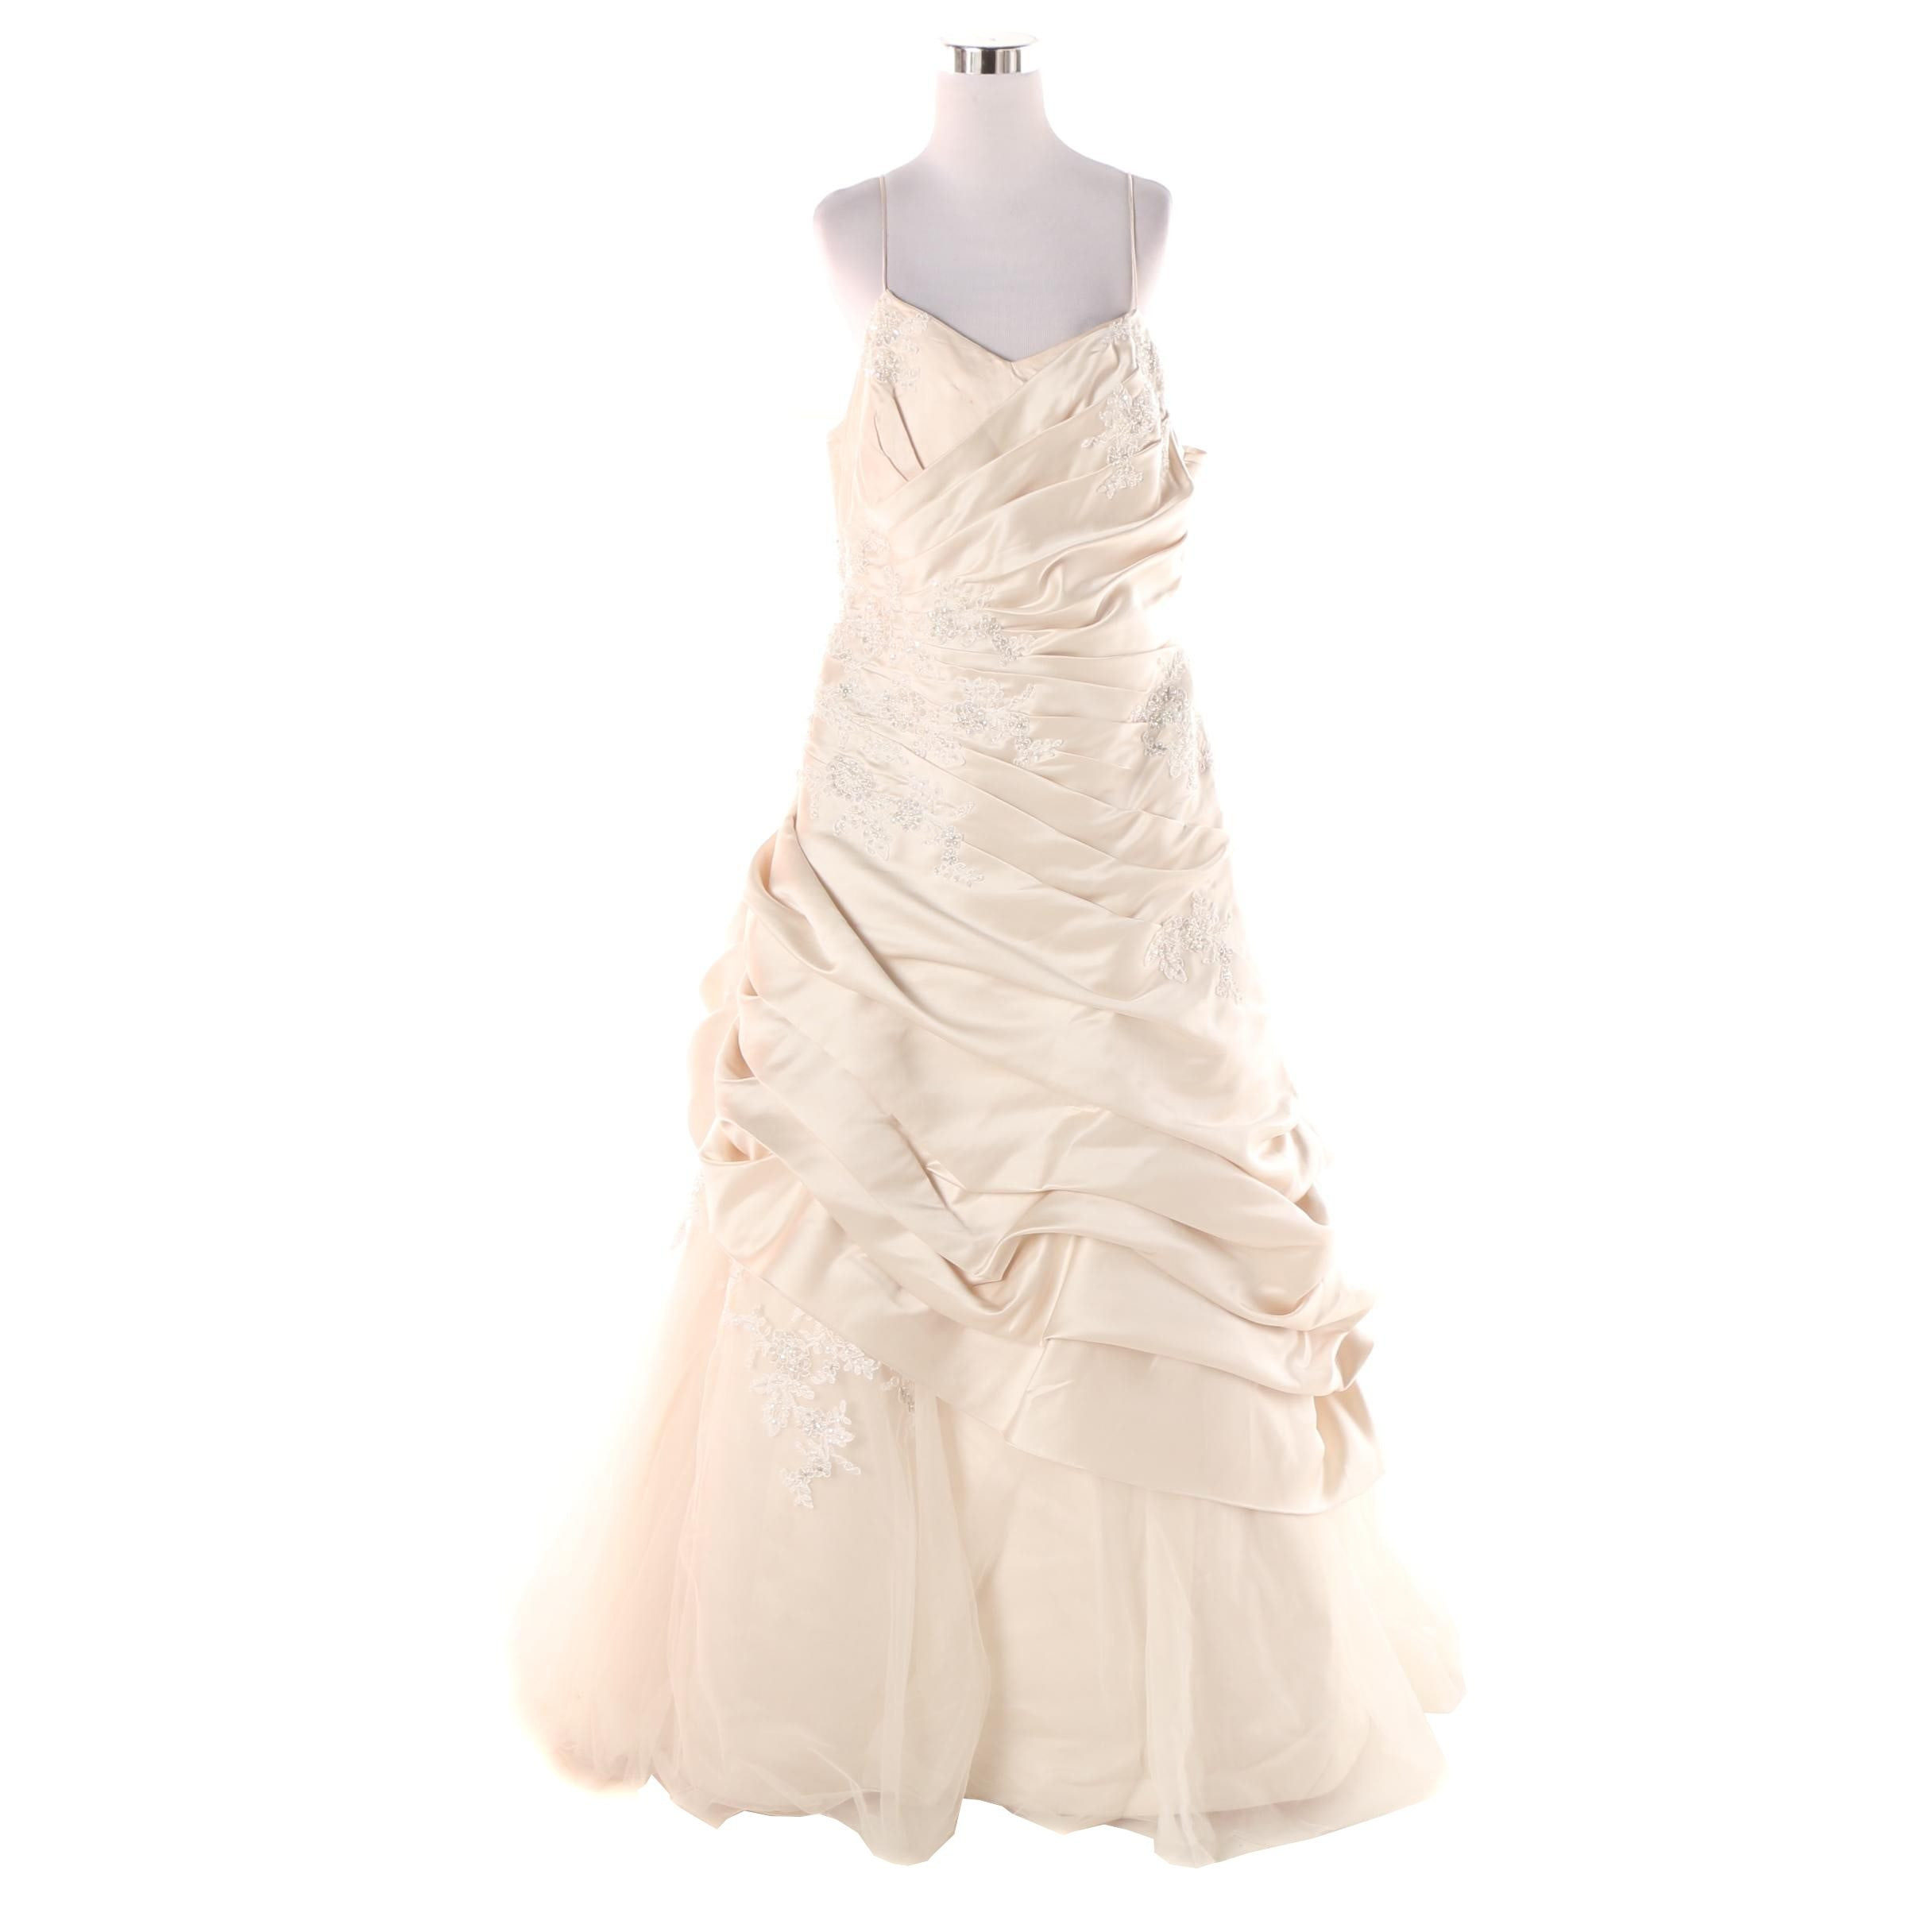 Champagne Satin Beaded Floral Lace Sleeveless Wedding Gown